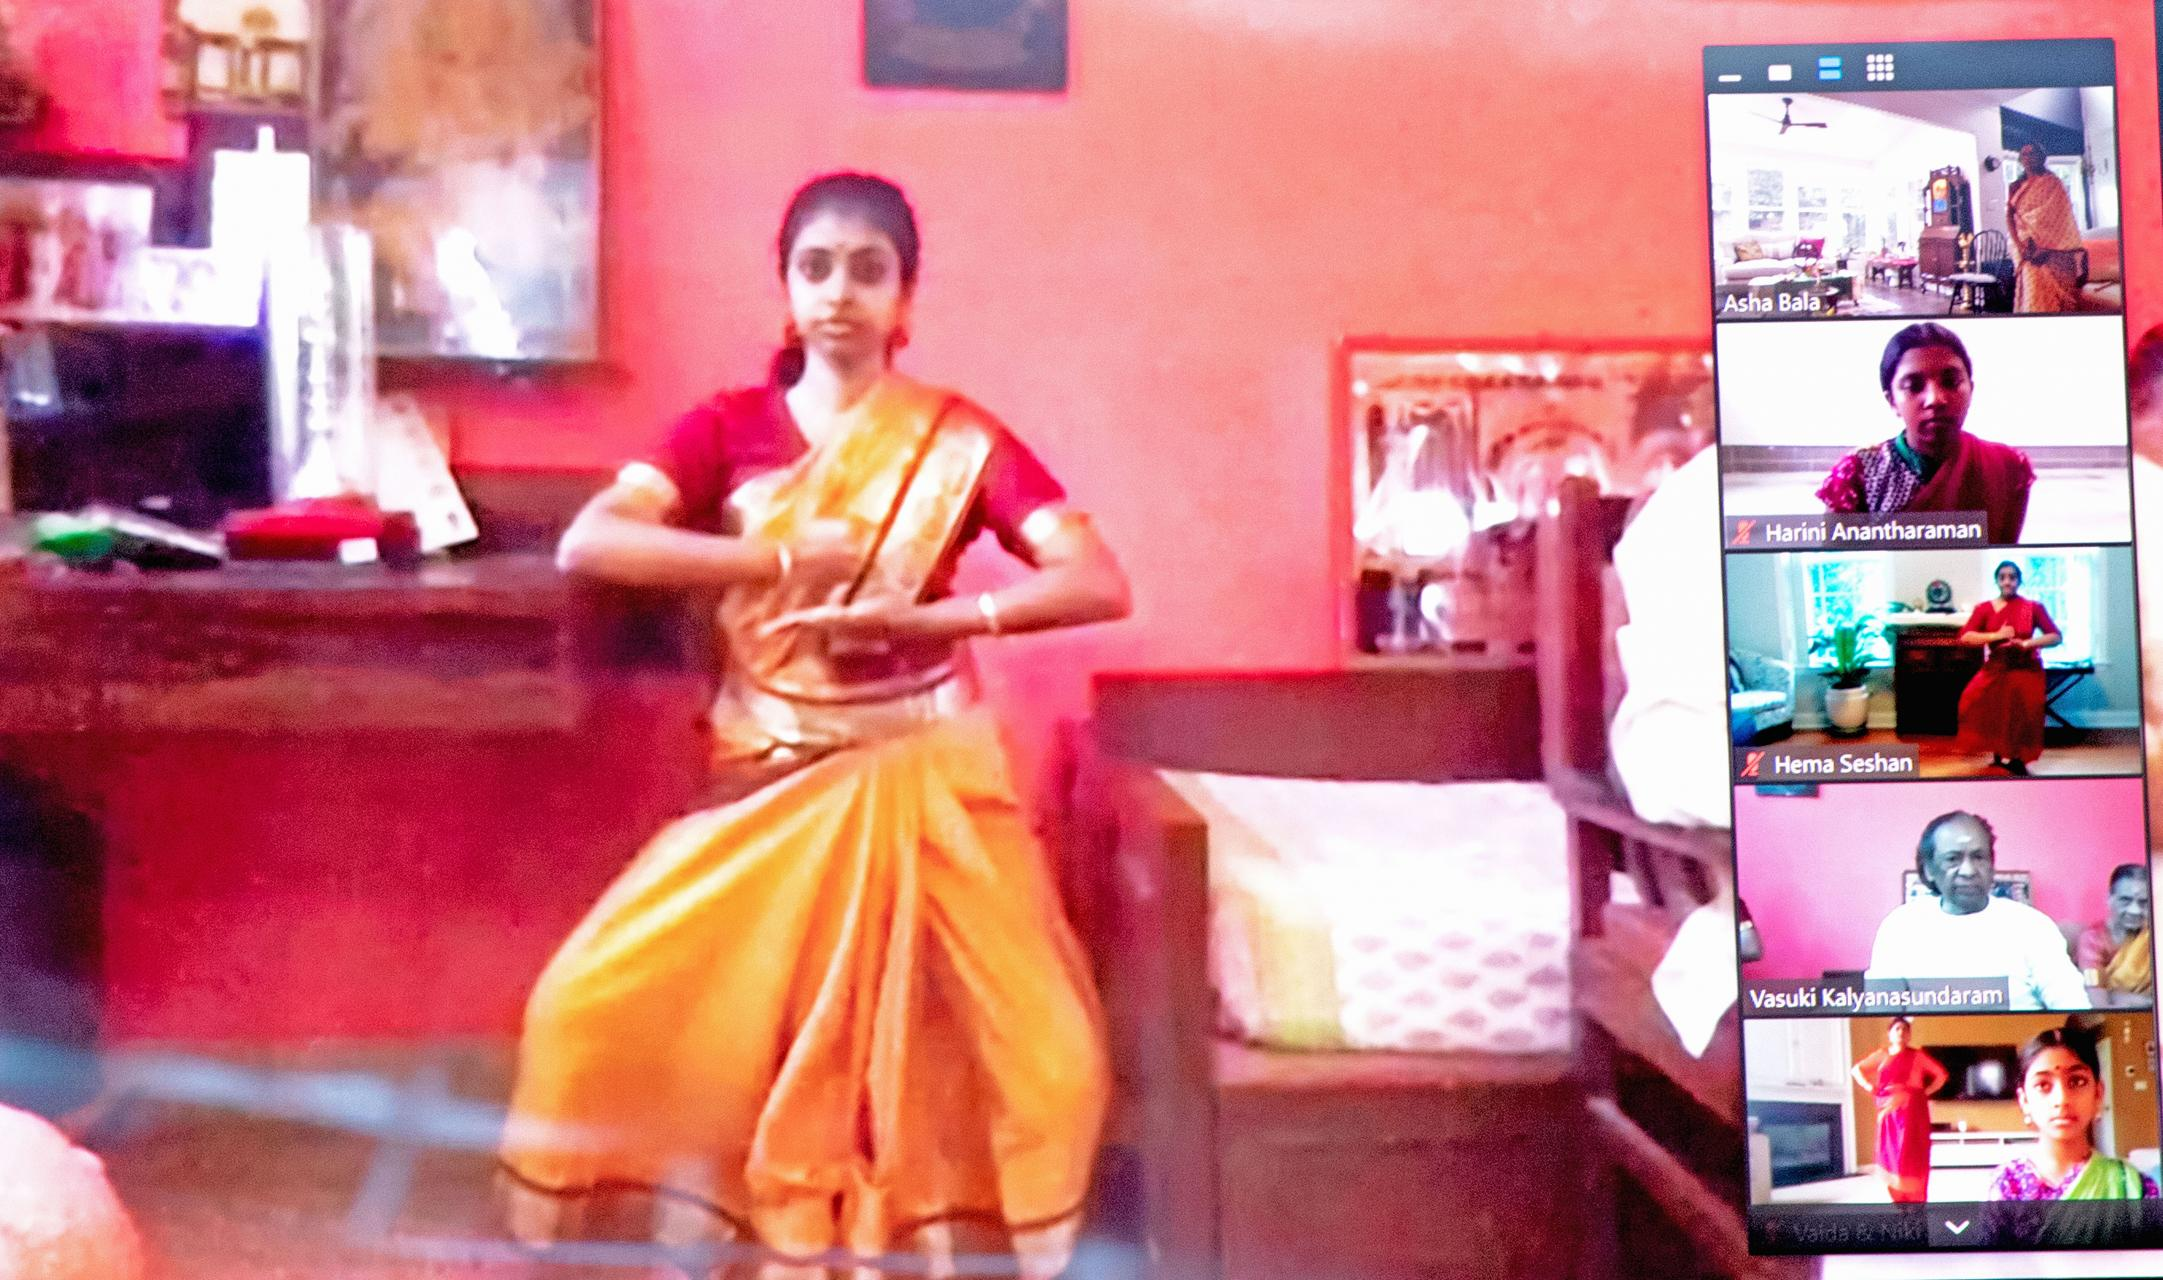 Screenshot of a virtual dance class. A young woman in a sari is captured mid dance move. Five video boxes of participants are on the right side of the screen.